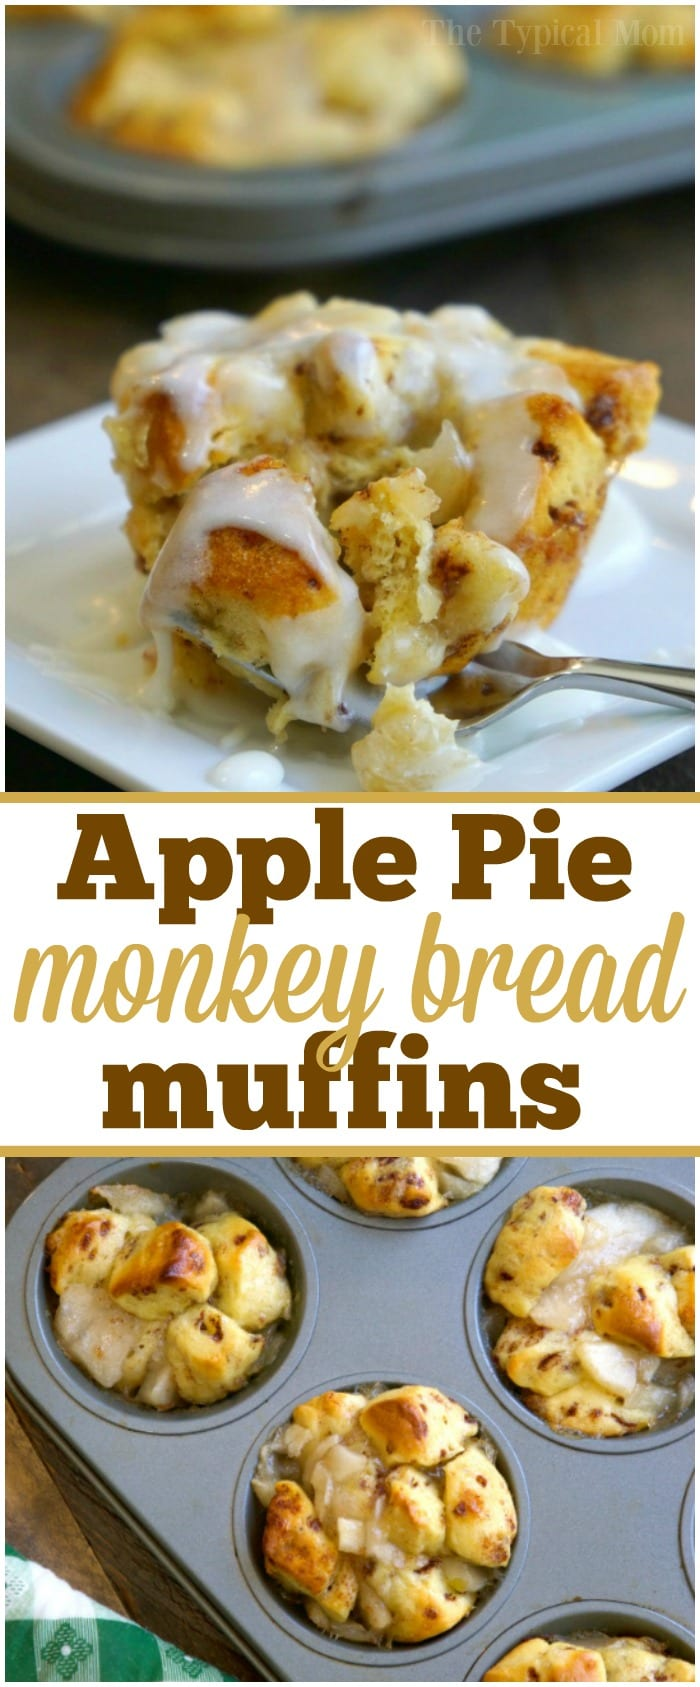 These 2 ingredient apple pie monkey bread muffins are amazing! A quick breakfast or dessert that just takes 15 minutes to make. You've got to try them!